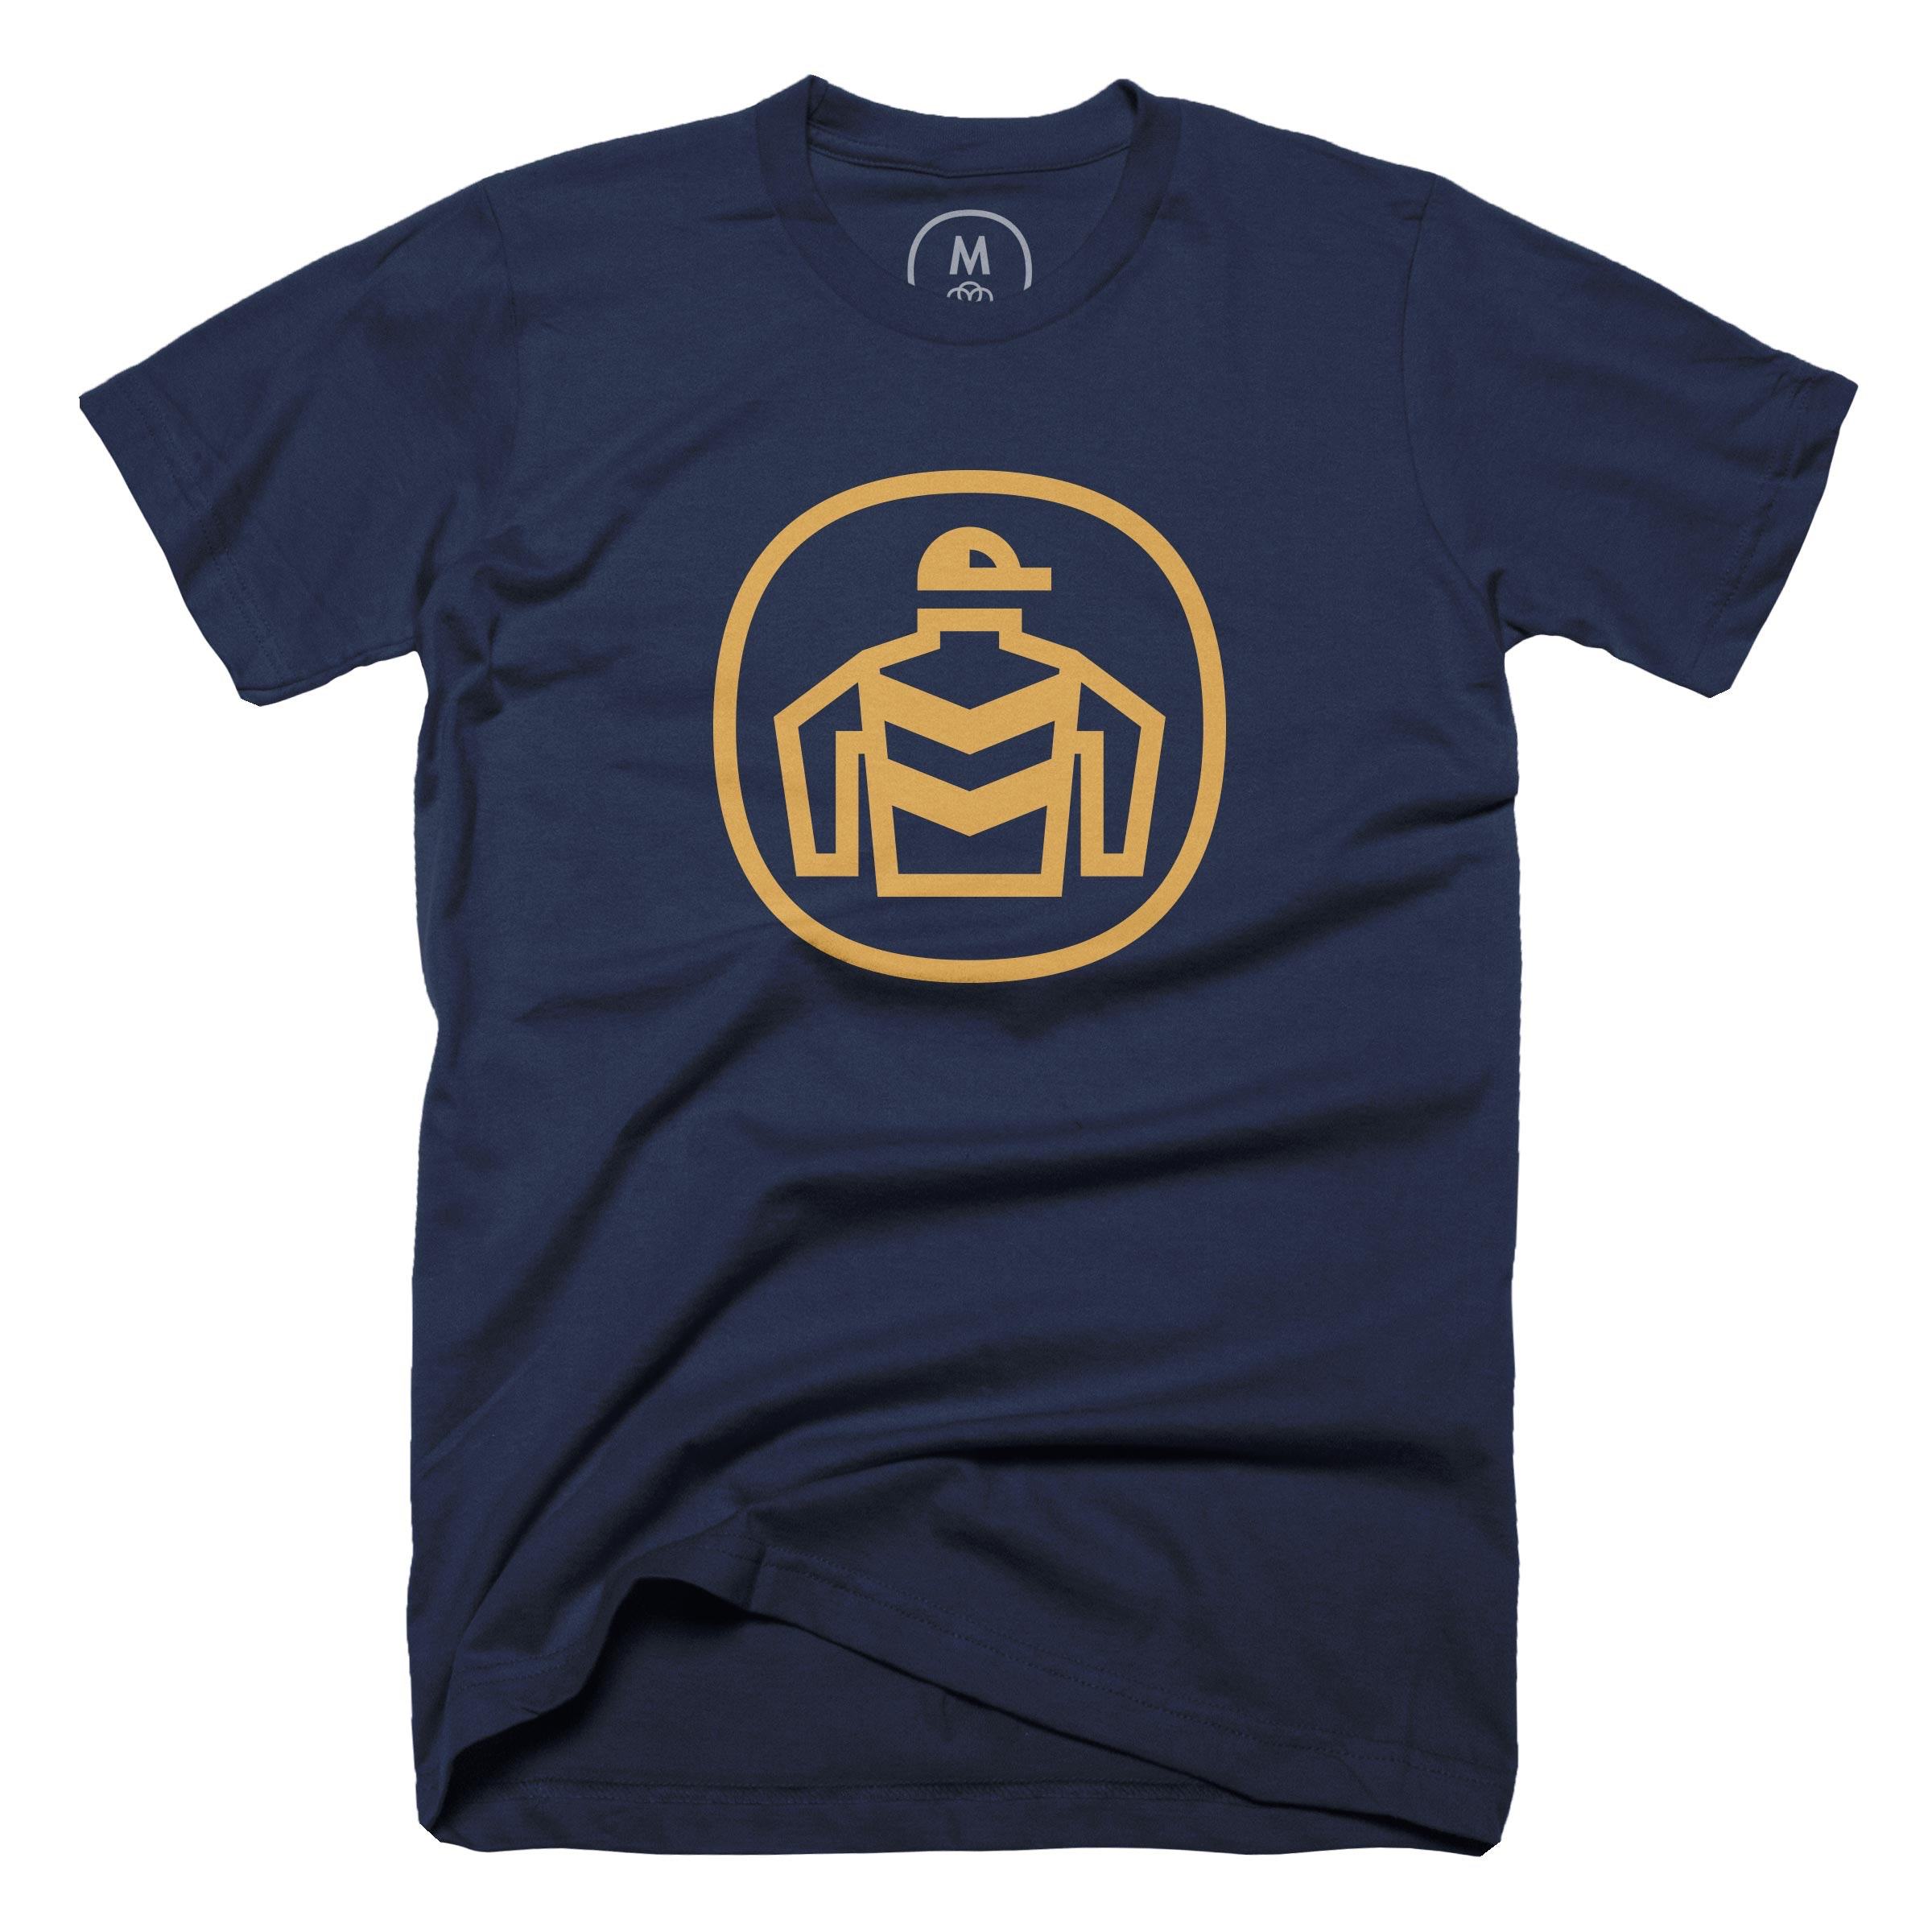 Superb-y Derby Navy (Men's)